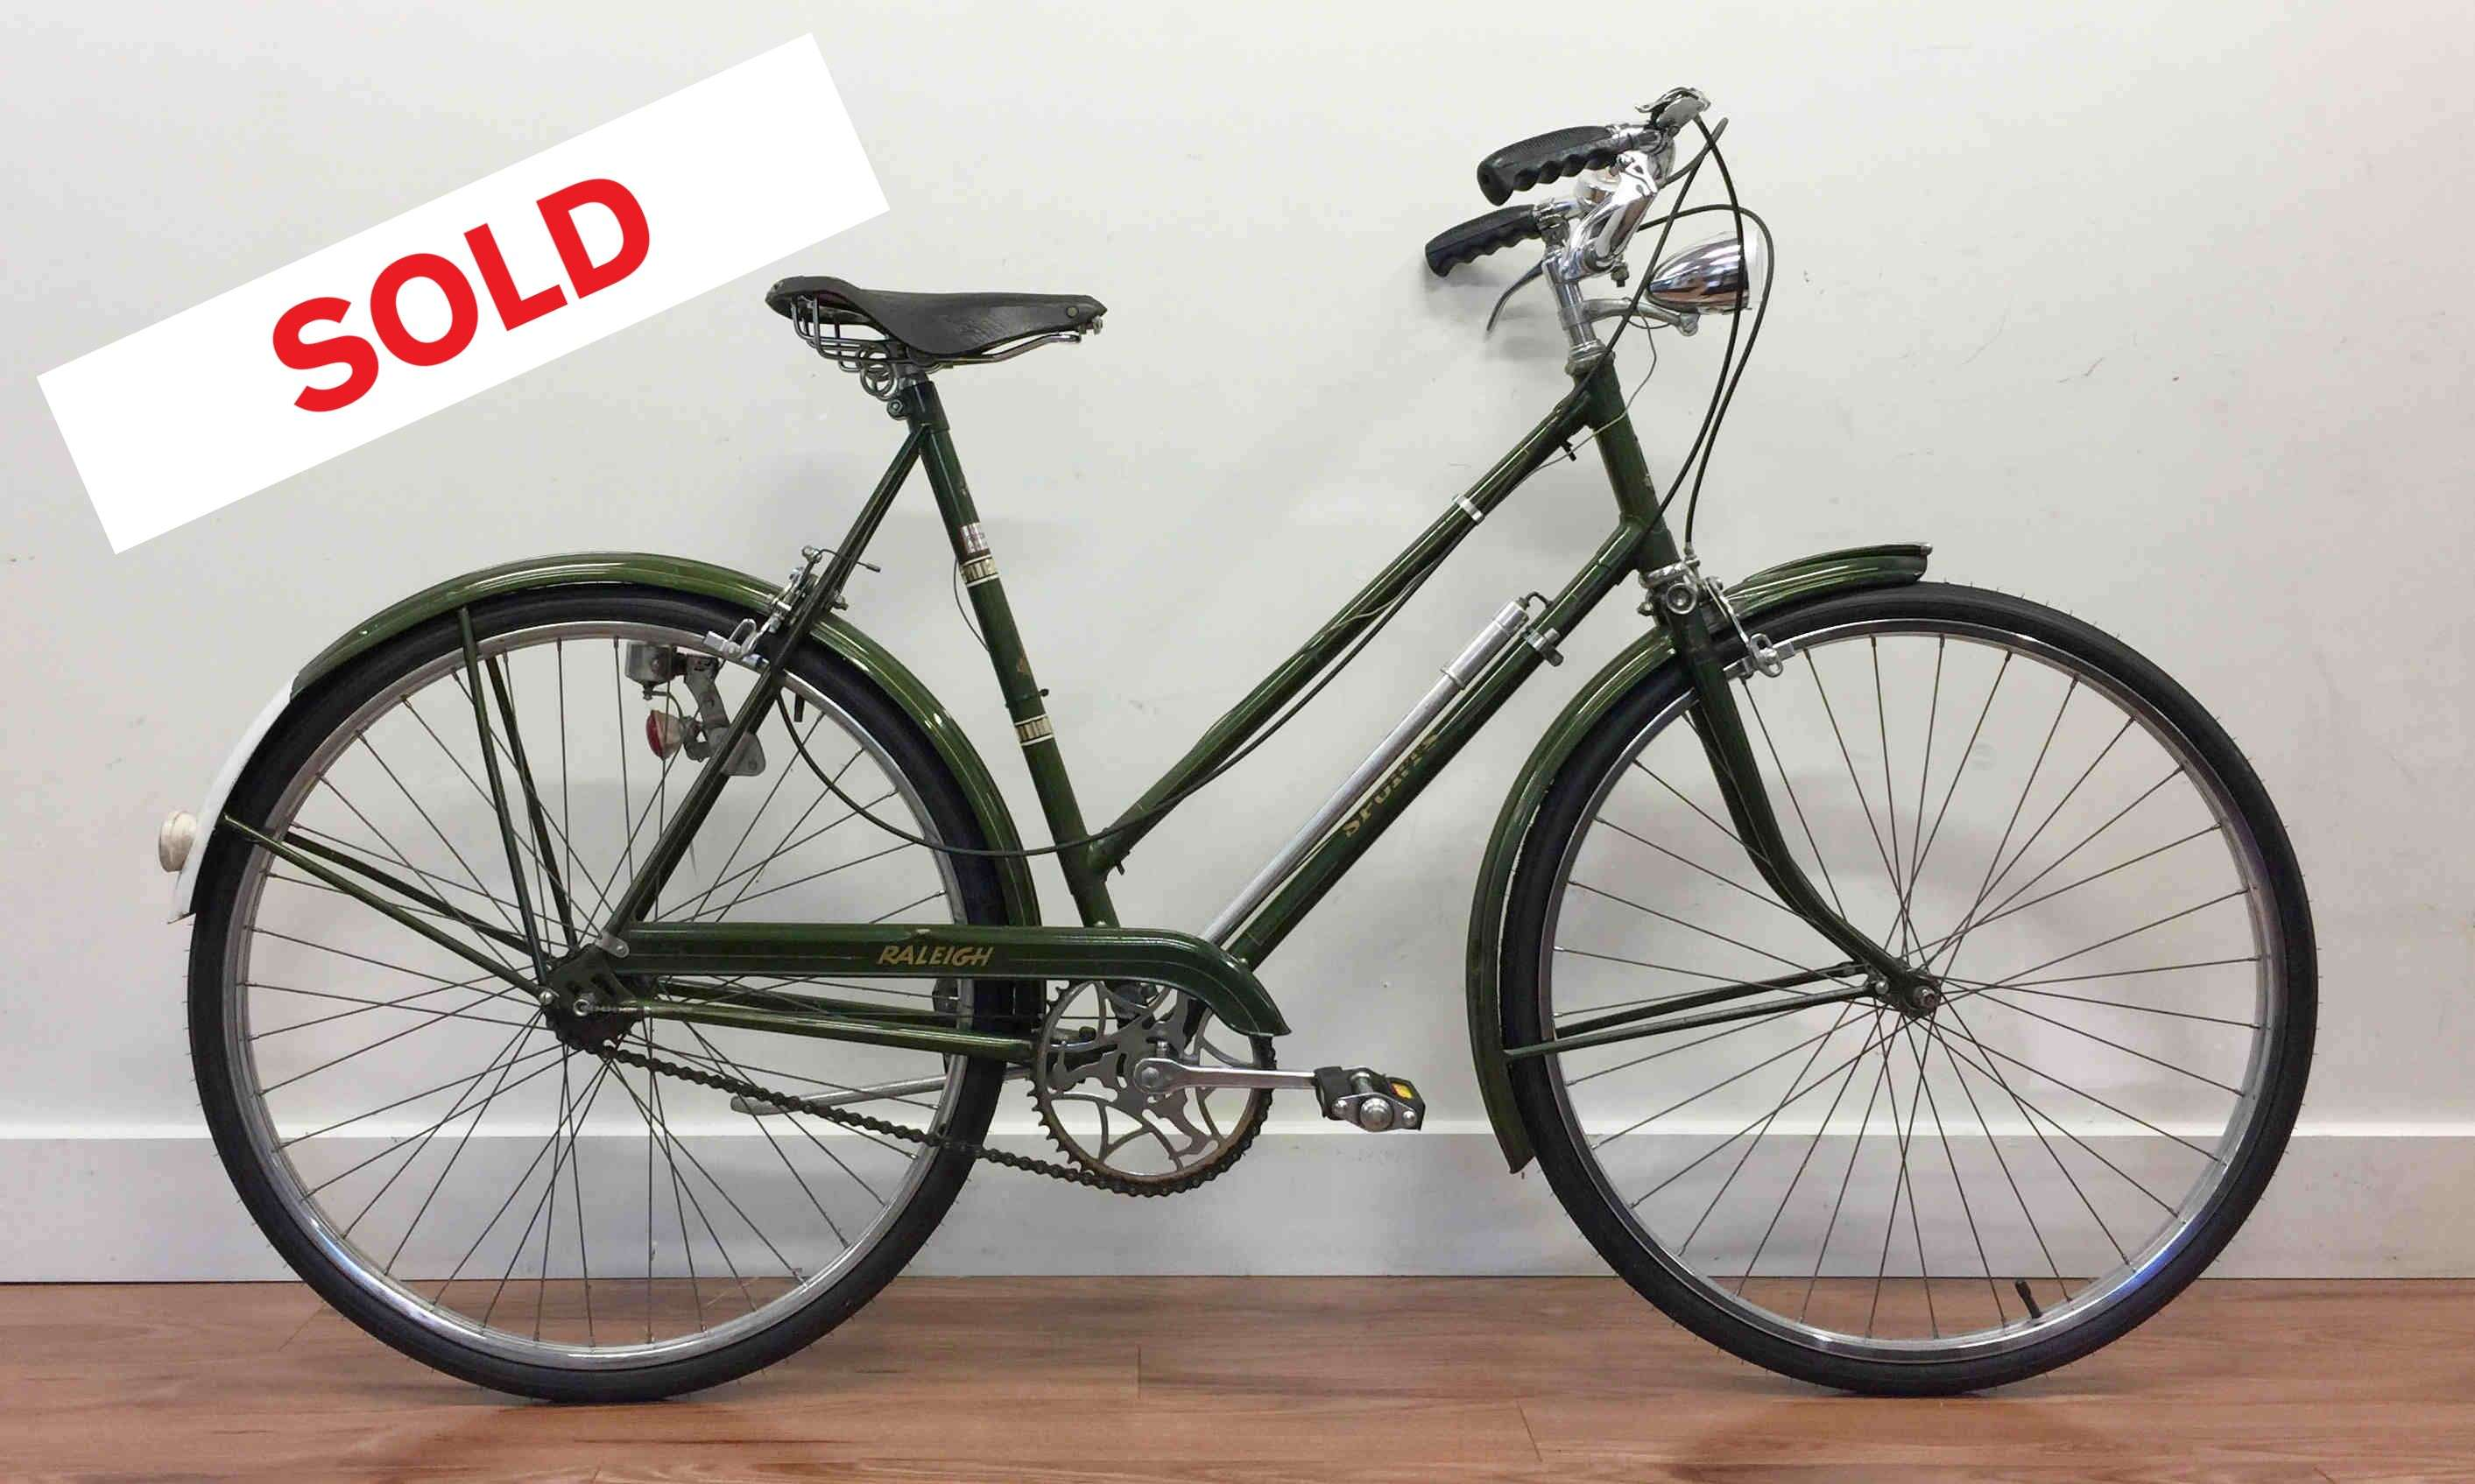 Previously Sold Bicycles